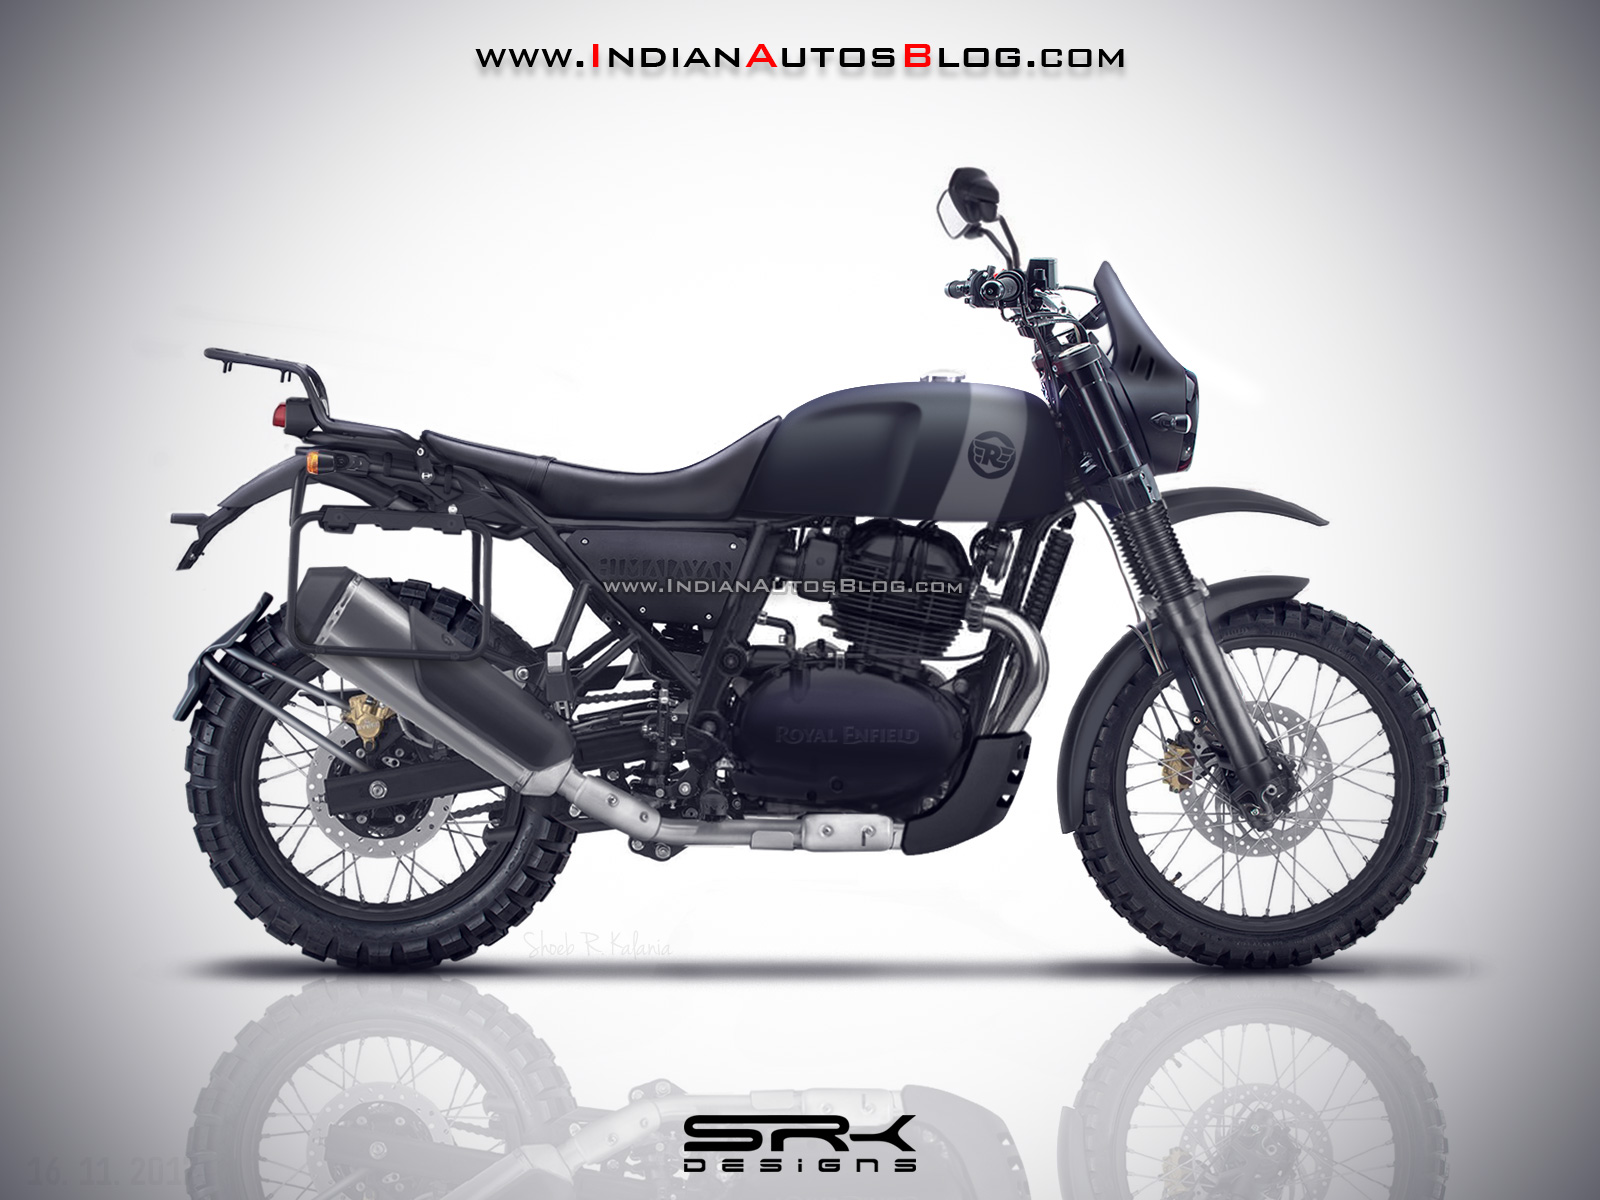 No Royal Enfield Himalayan 650 Variant In The Short Term Plan Res